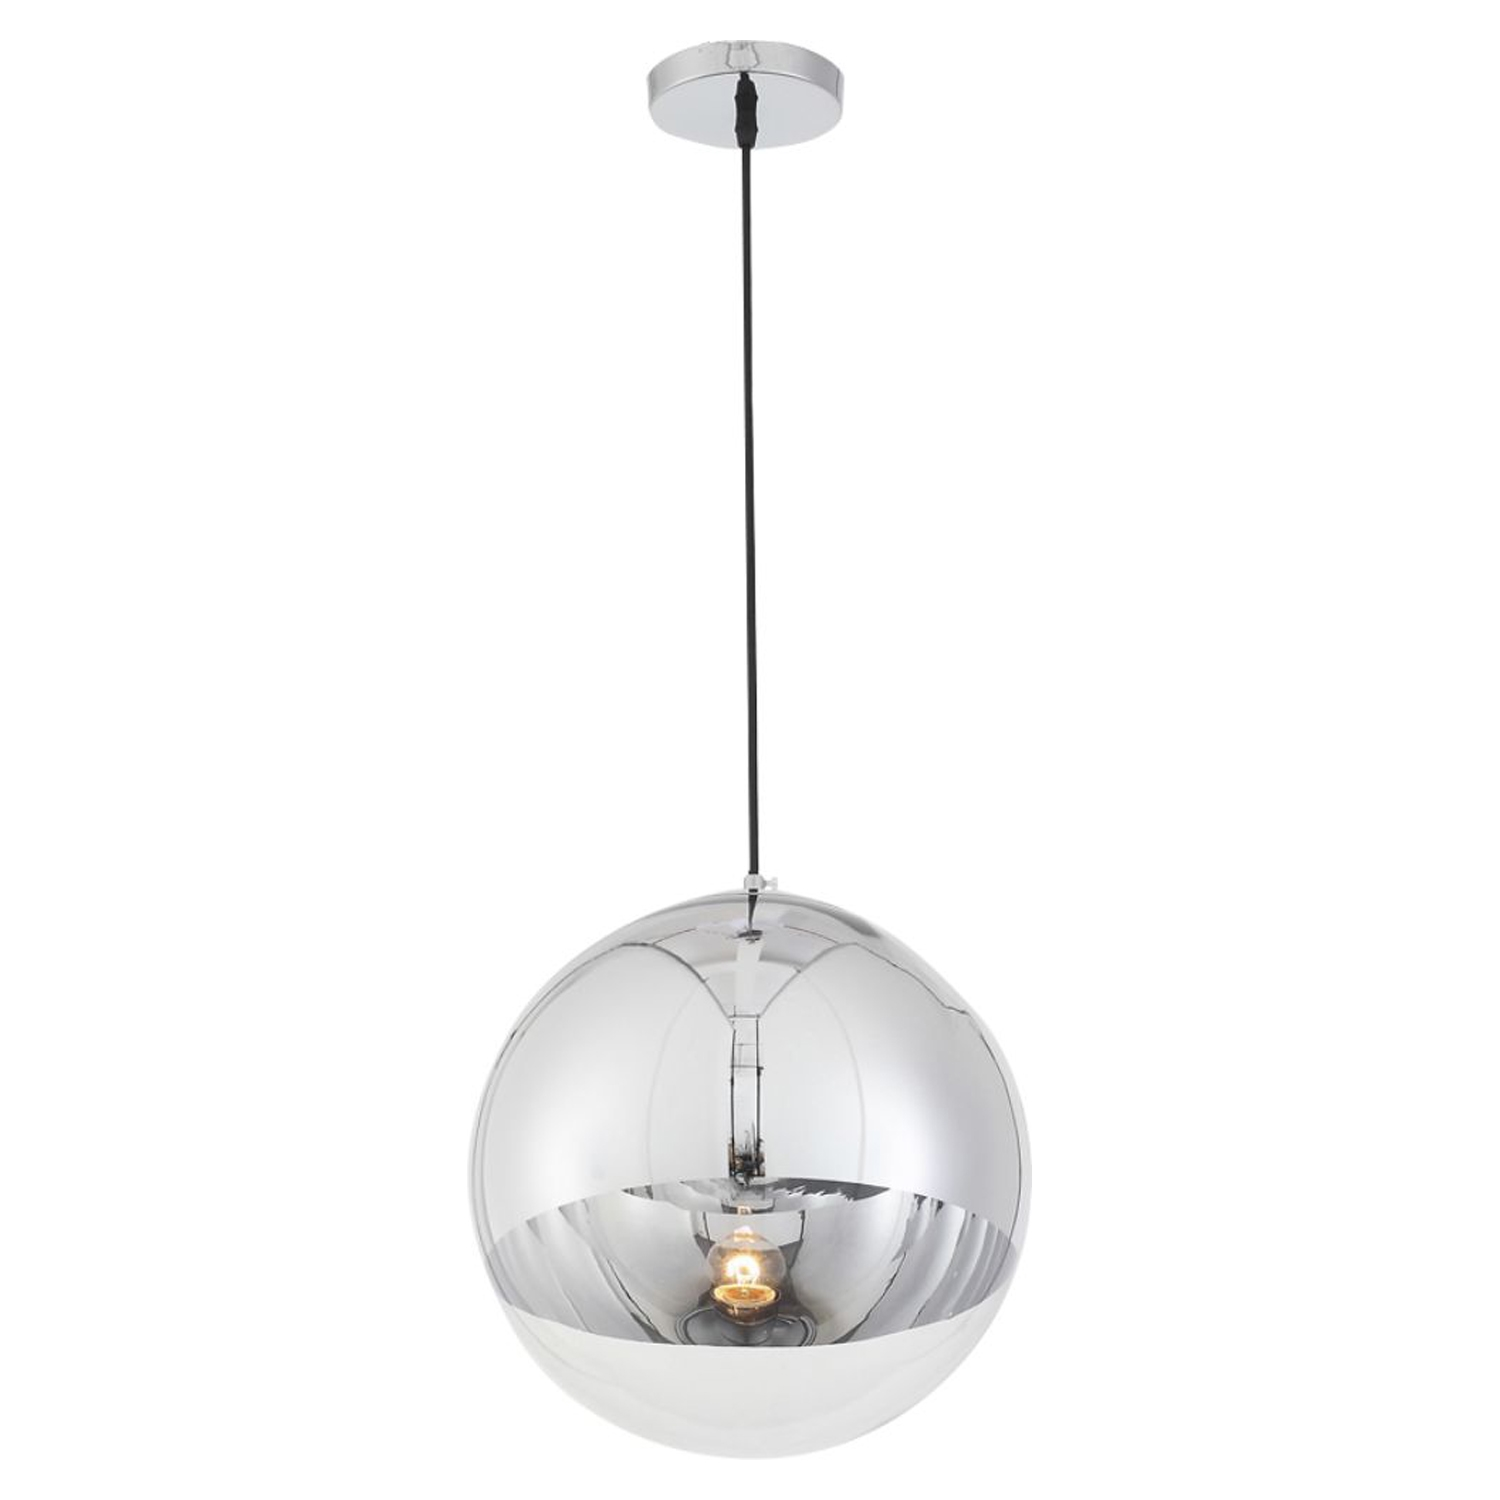 Alida Chrome Pendant Light - NYEK-225552